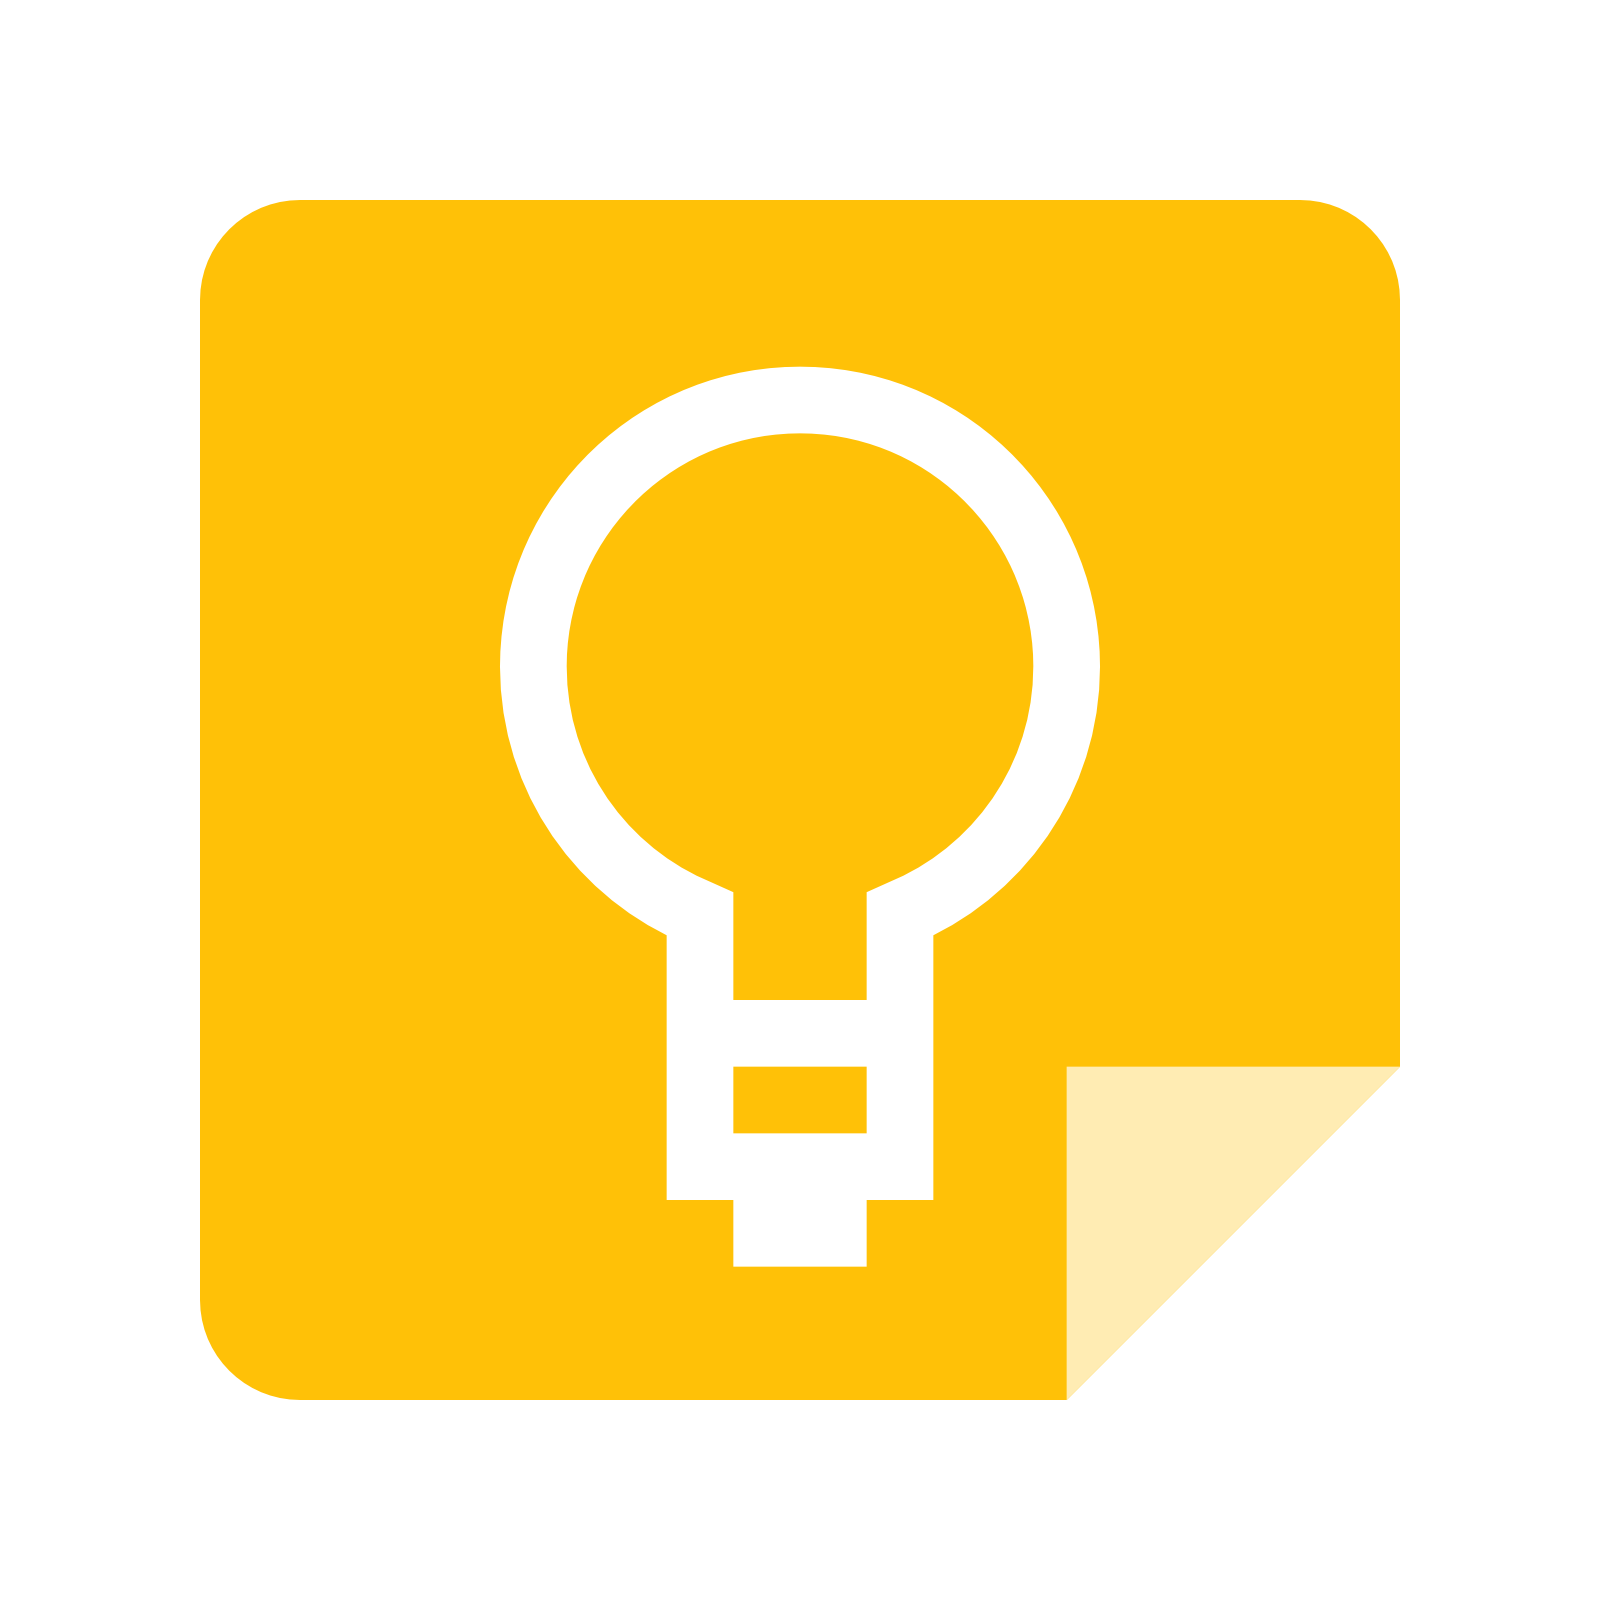 Google keep icon png. Your cool with sedc